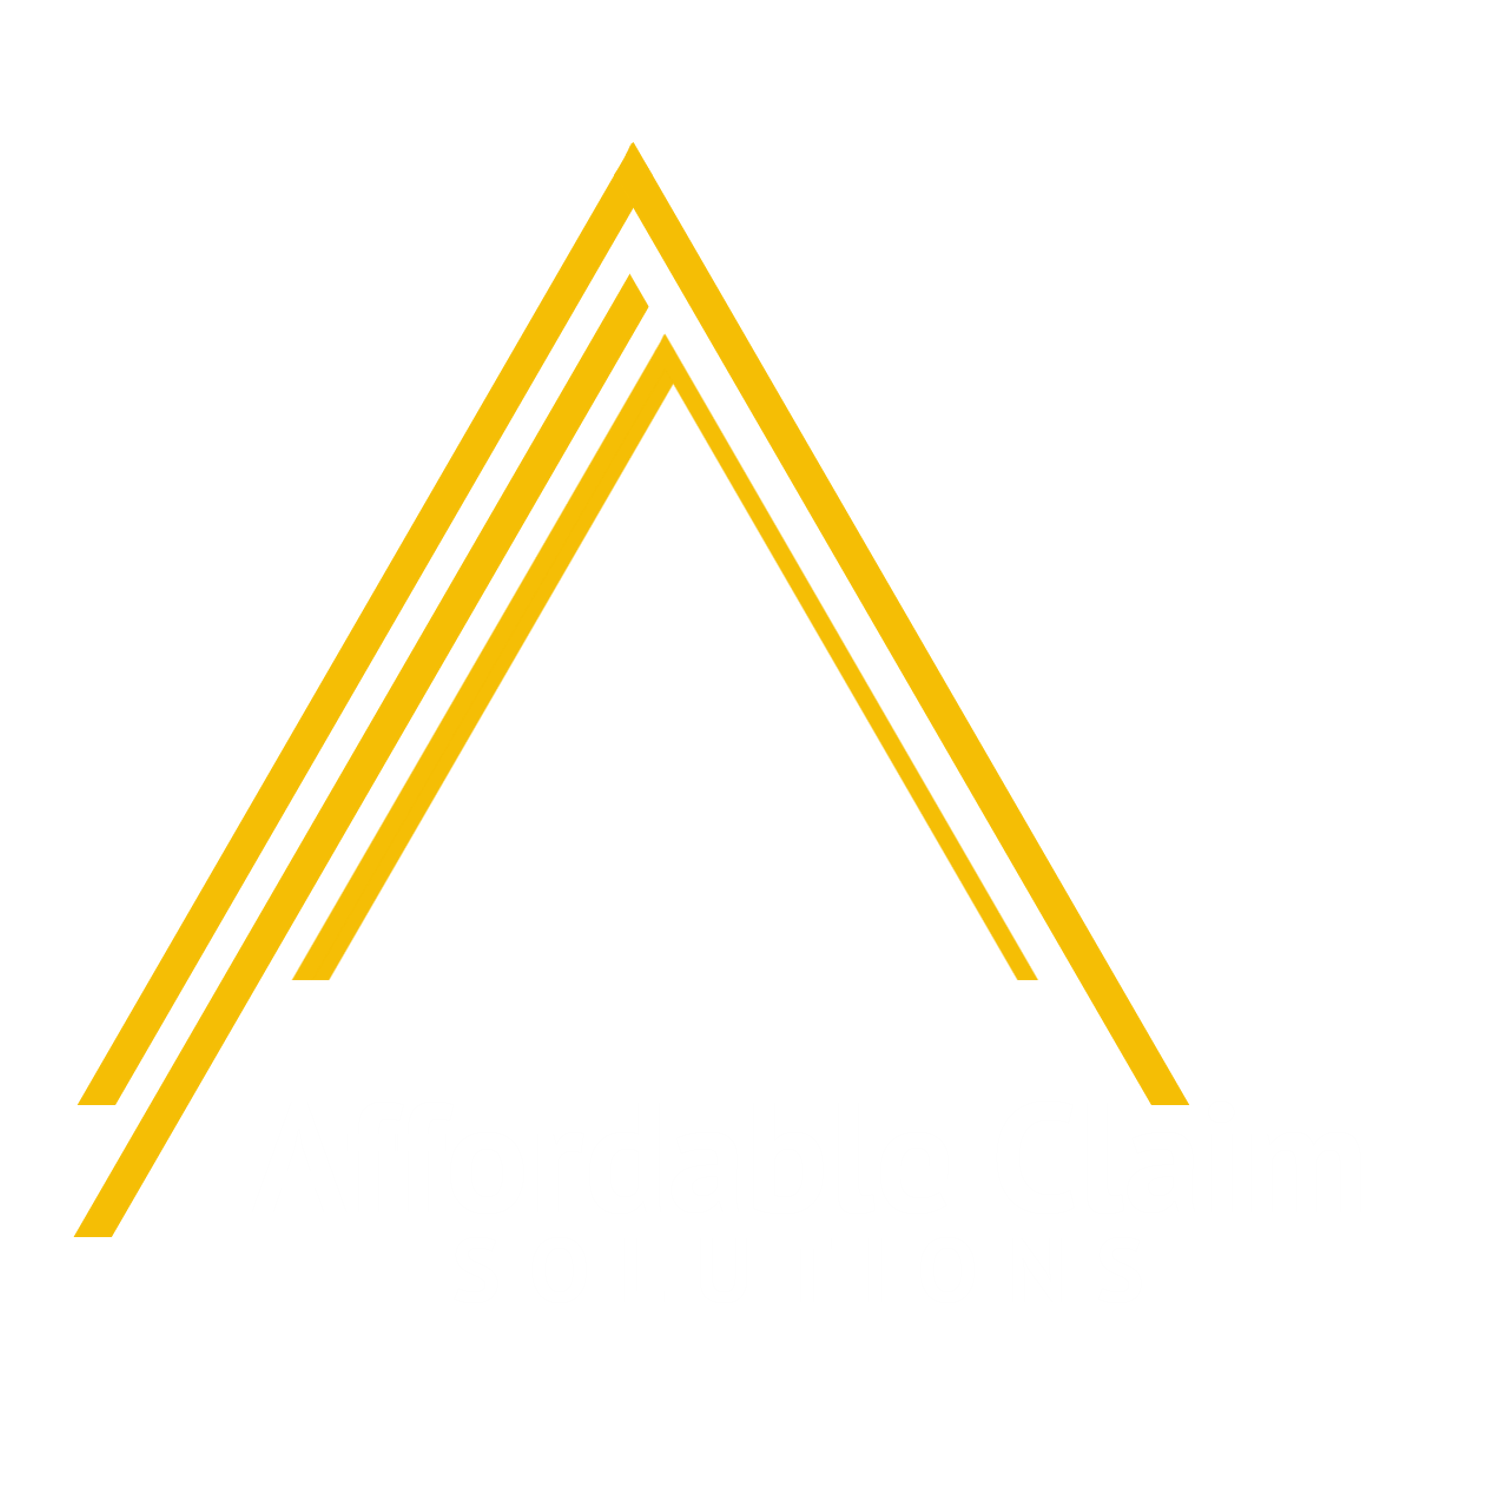 Affordable Claim Solutions